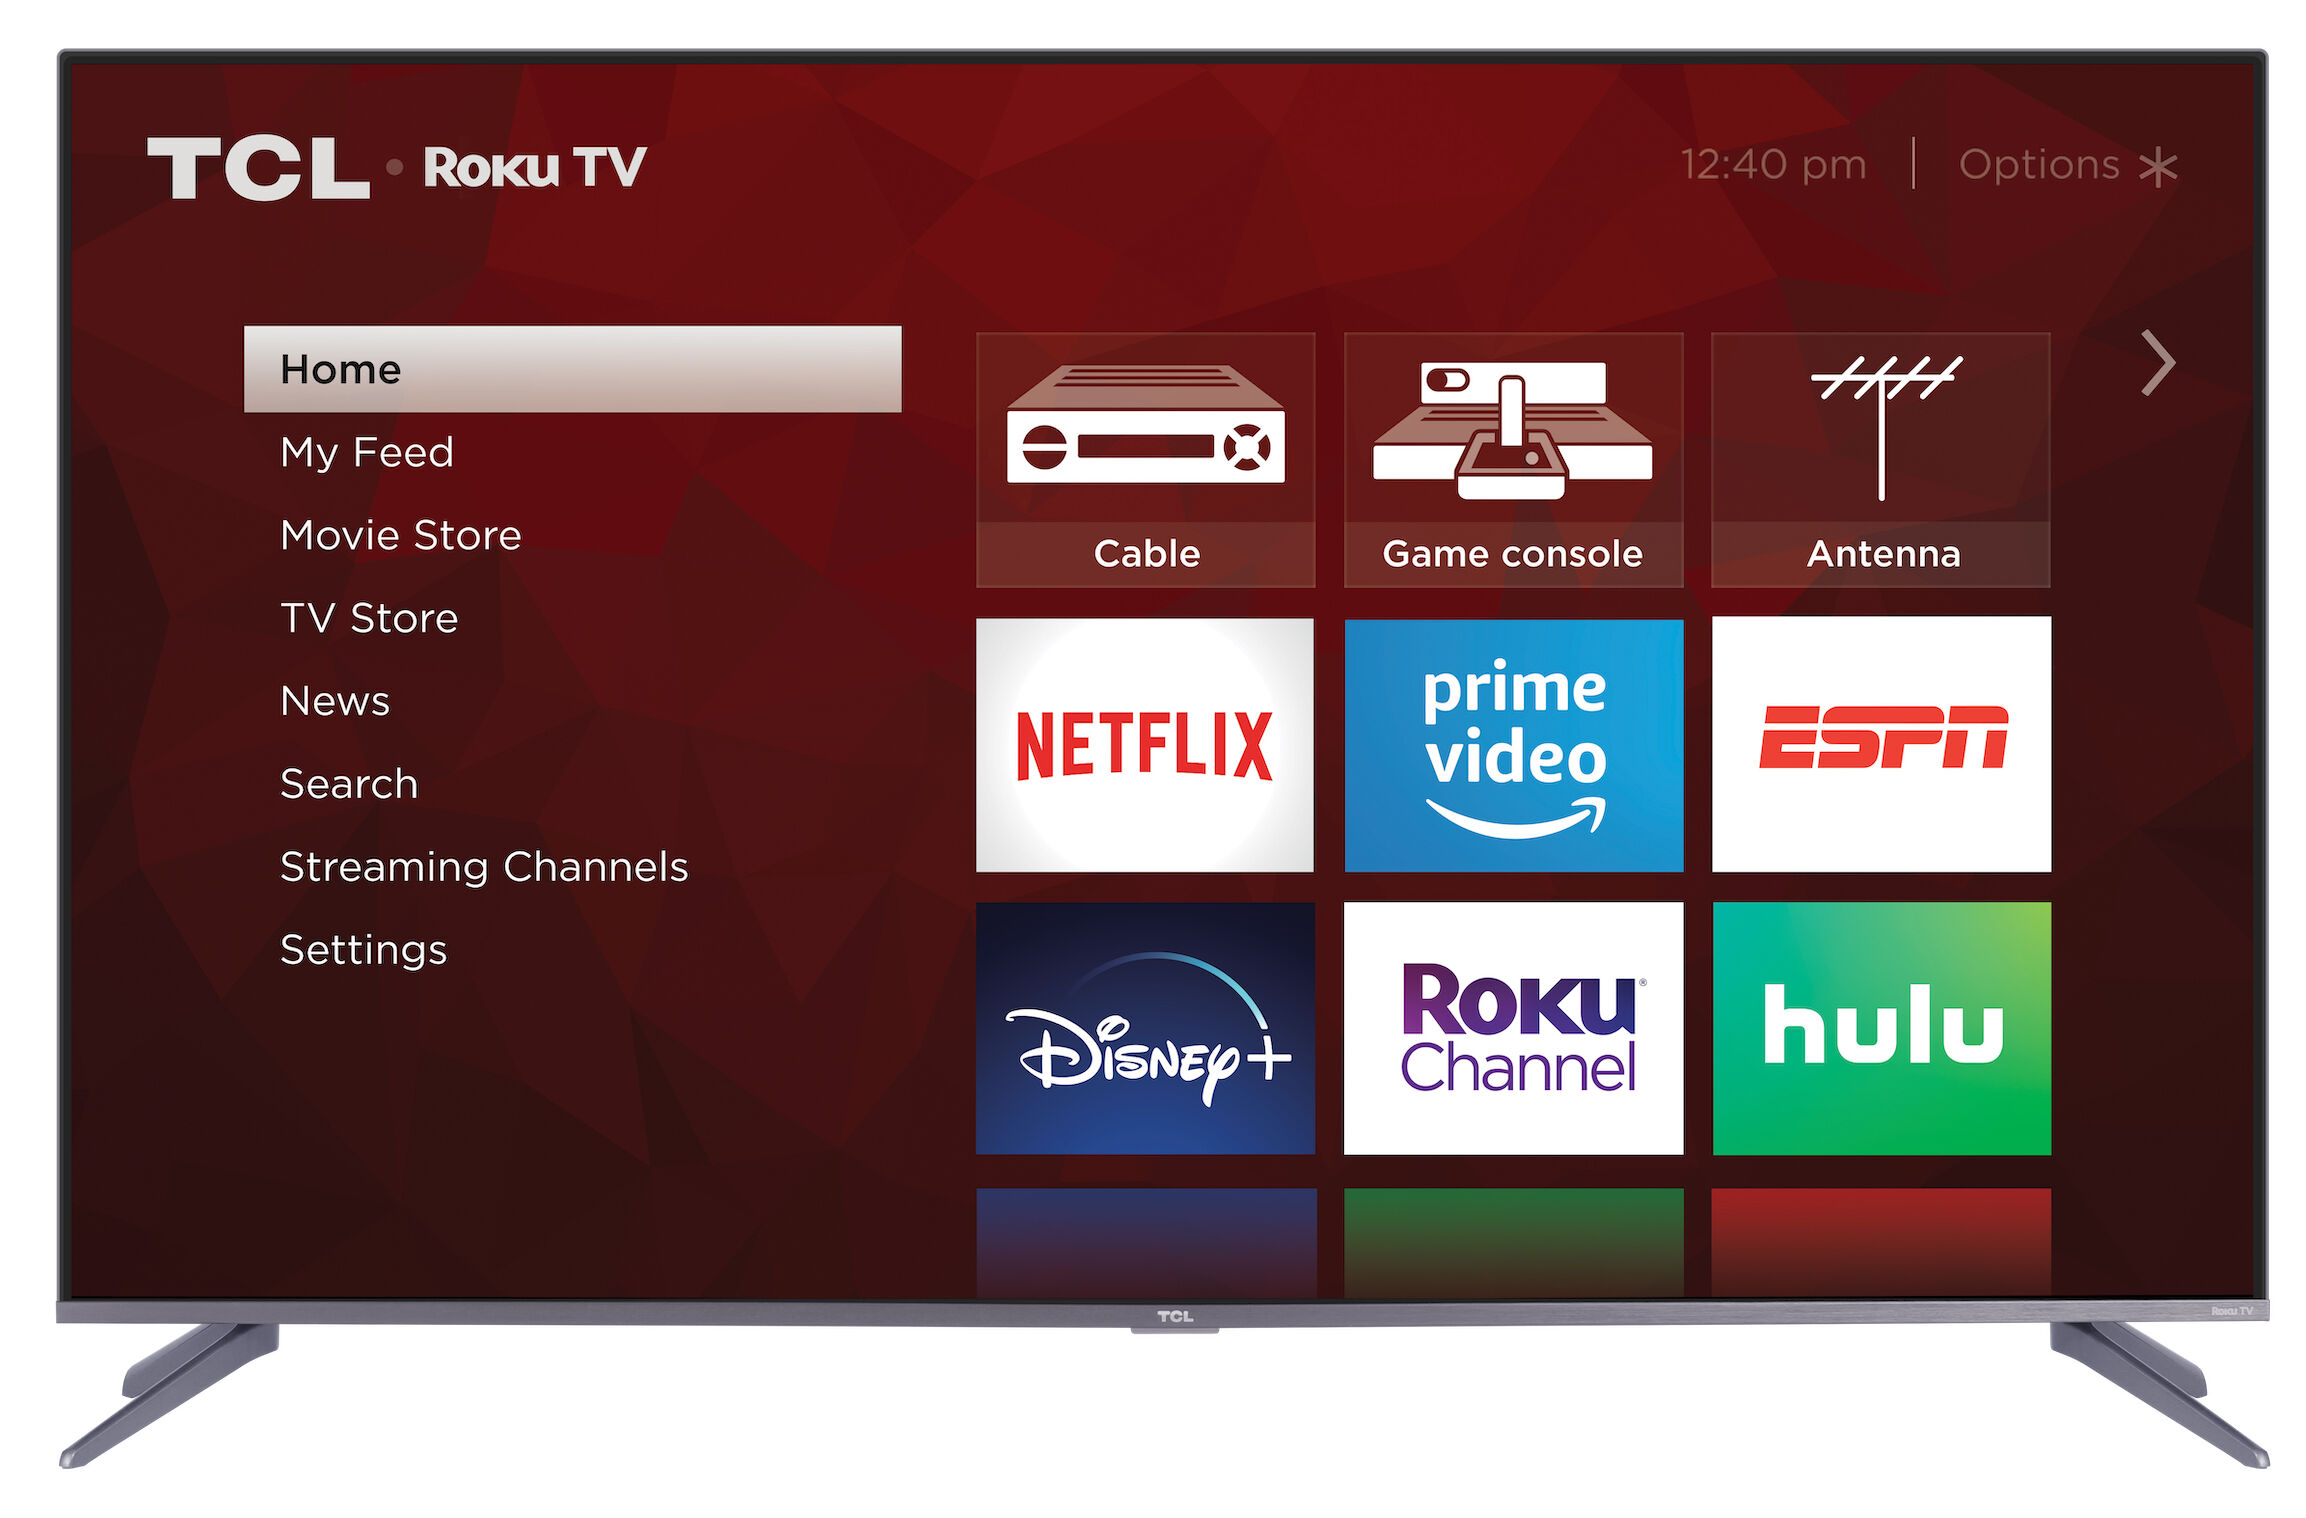 TCL's new 5-Series TVs should be a step down in overall picture quality but run the same Roku OS and should bring an improvement over last year's models.